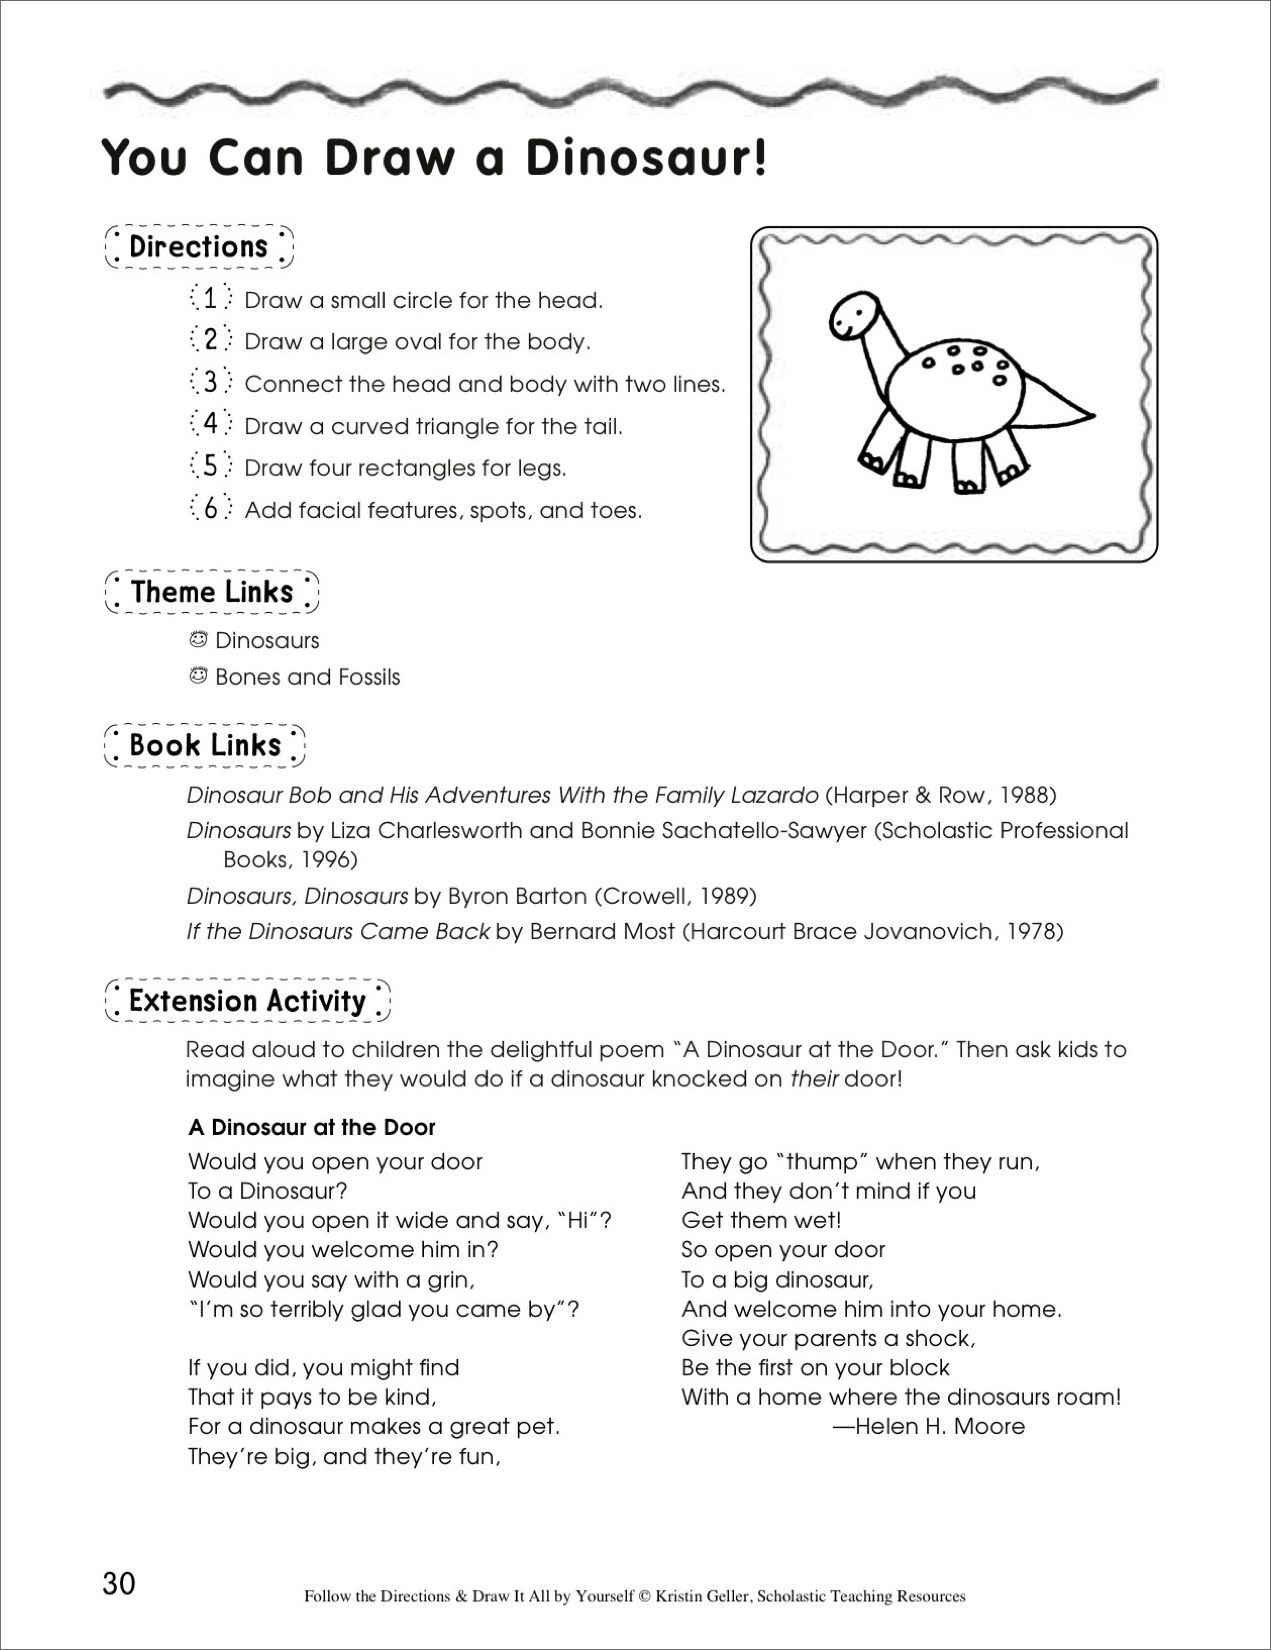 Draw A Dinosaur In 6 Steps Follow The Directions